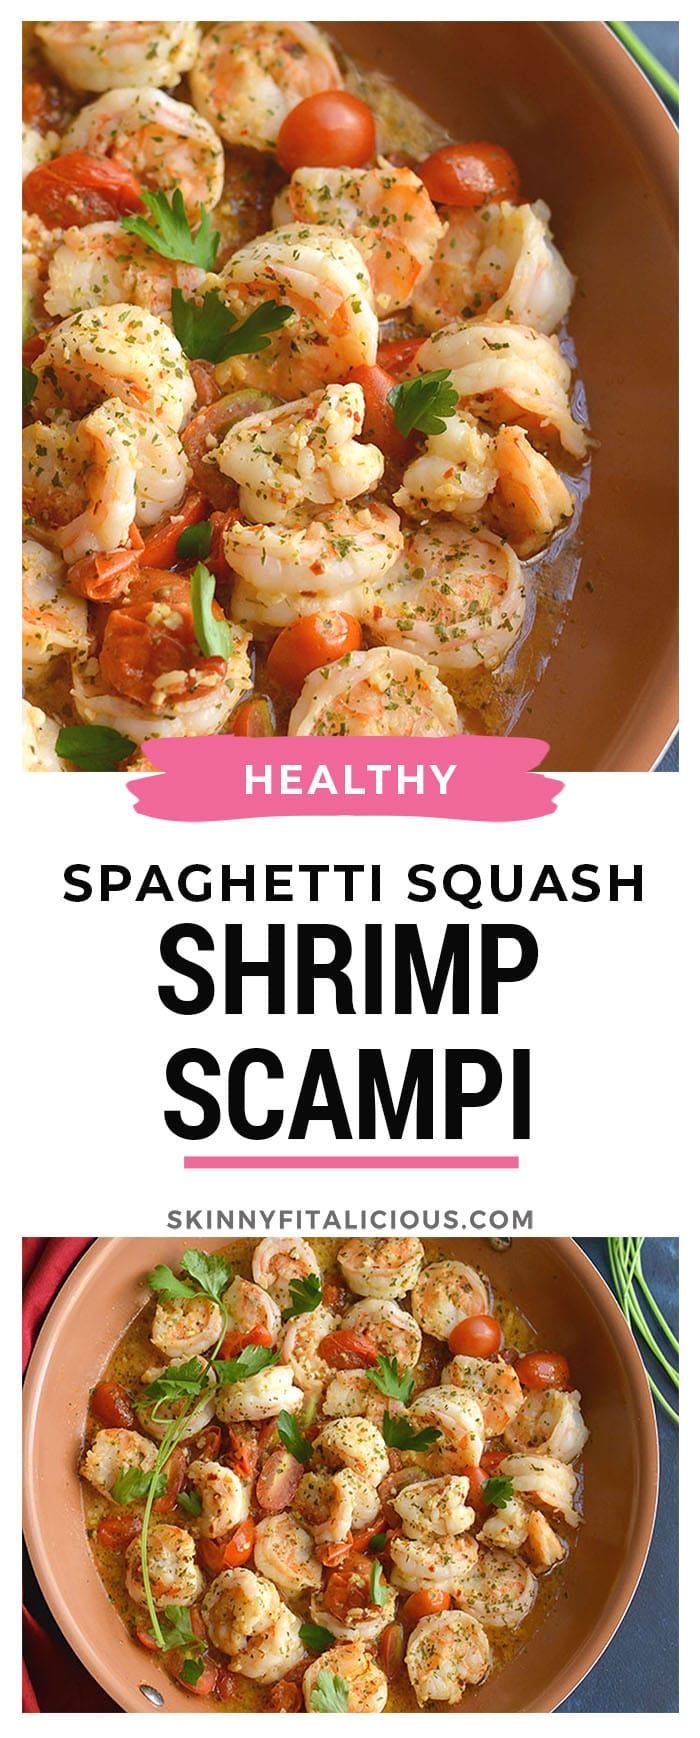 Healthy Shrimp Scampi Spaghetti Squash! Packed with flavor and simple to make. A lower carb meal with more nutrition by replacing pasta and a lightened up sauce with heart friendly ingredients. Gluten Free + Low Calorie